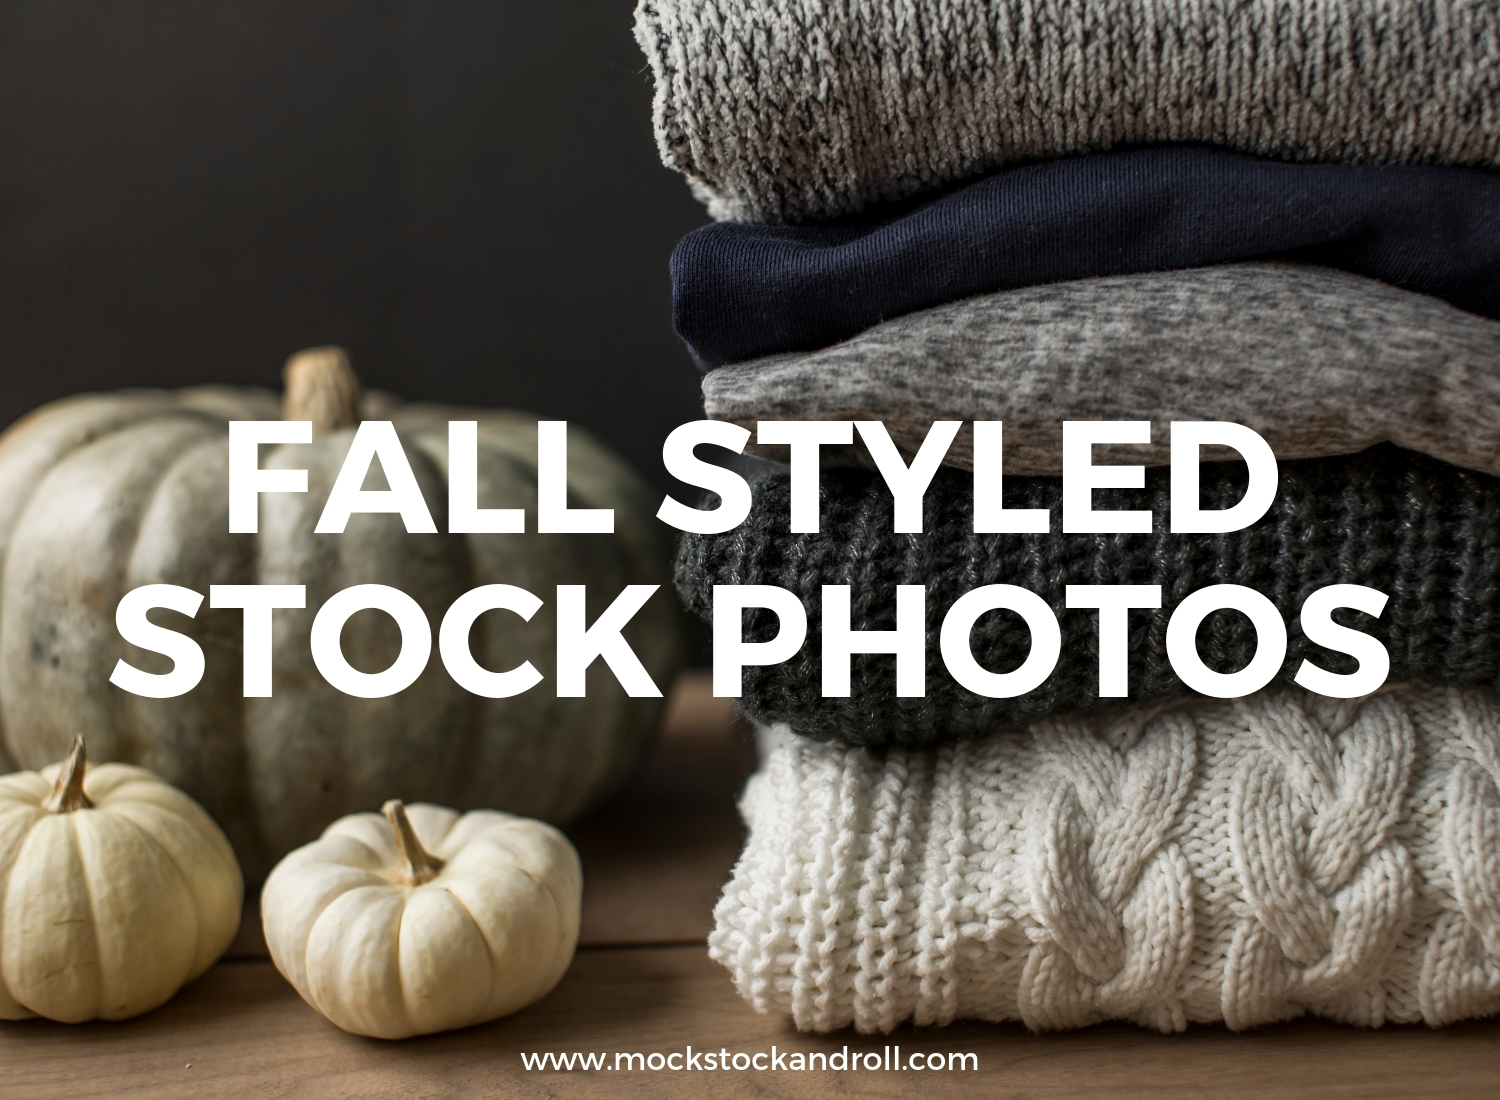 fall styled stock photos mock stock and roll